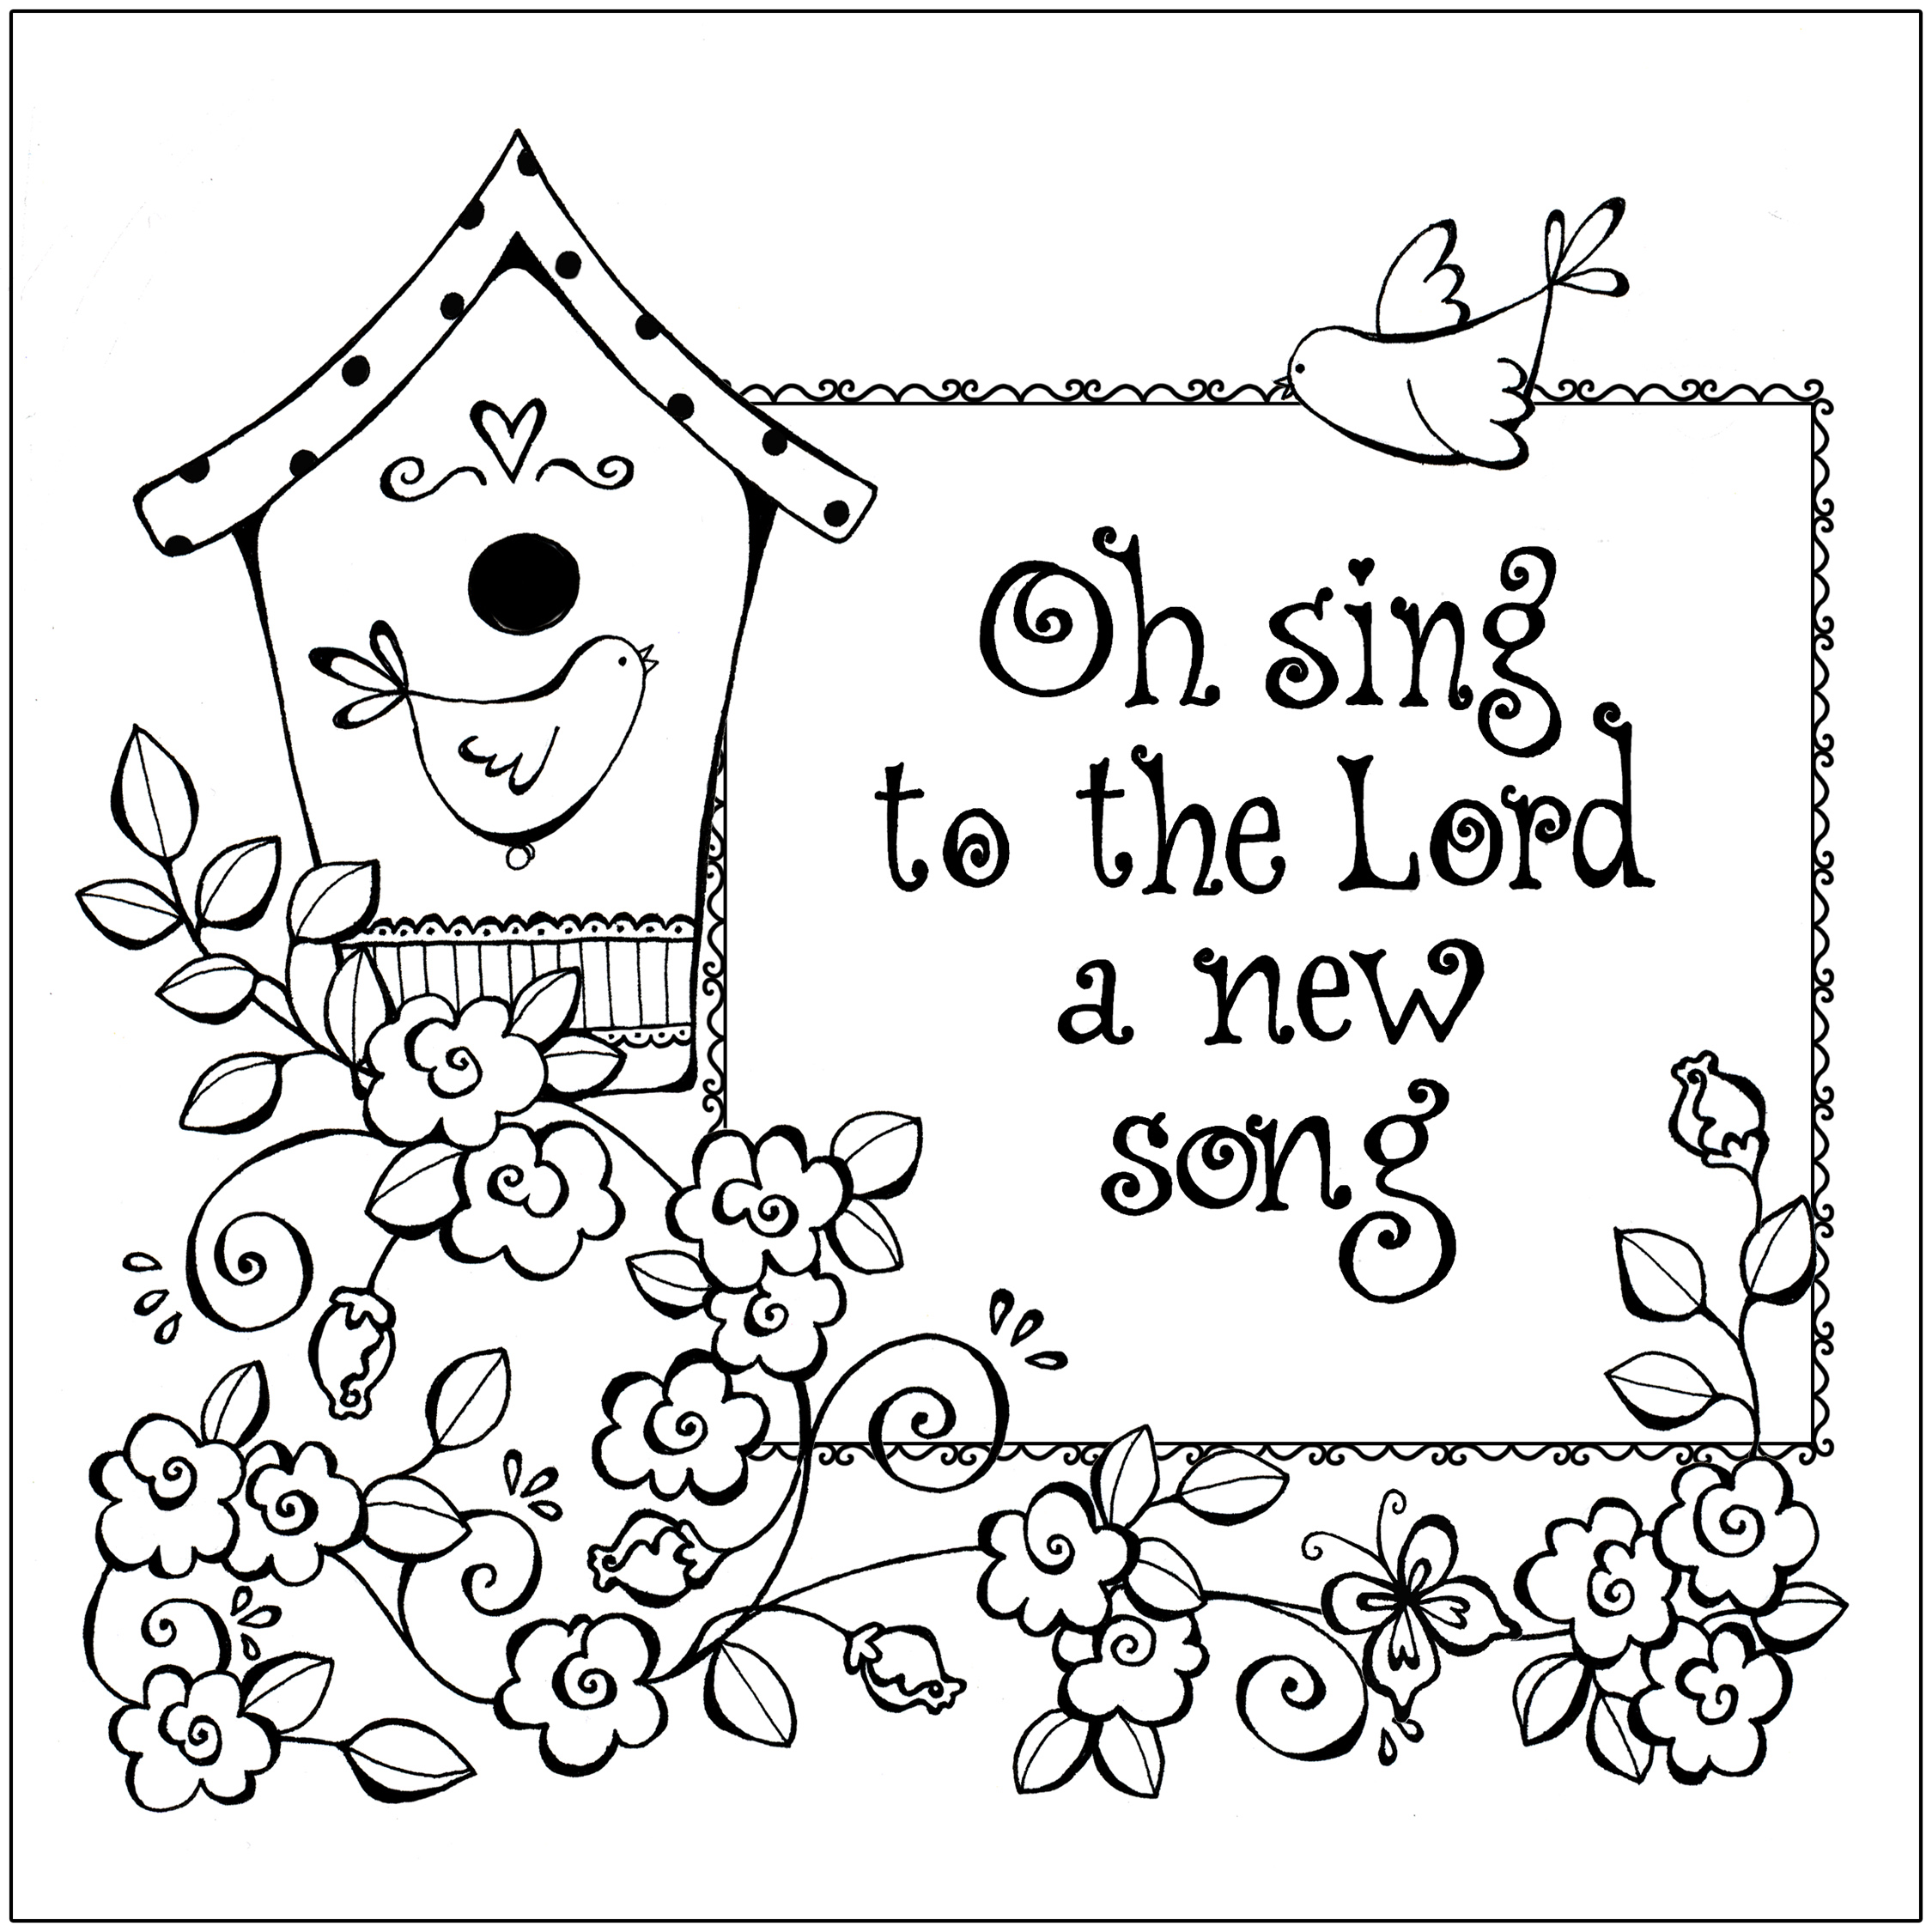 sunday school coloring pages printable - photo#34